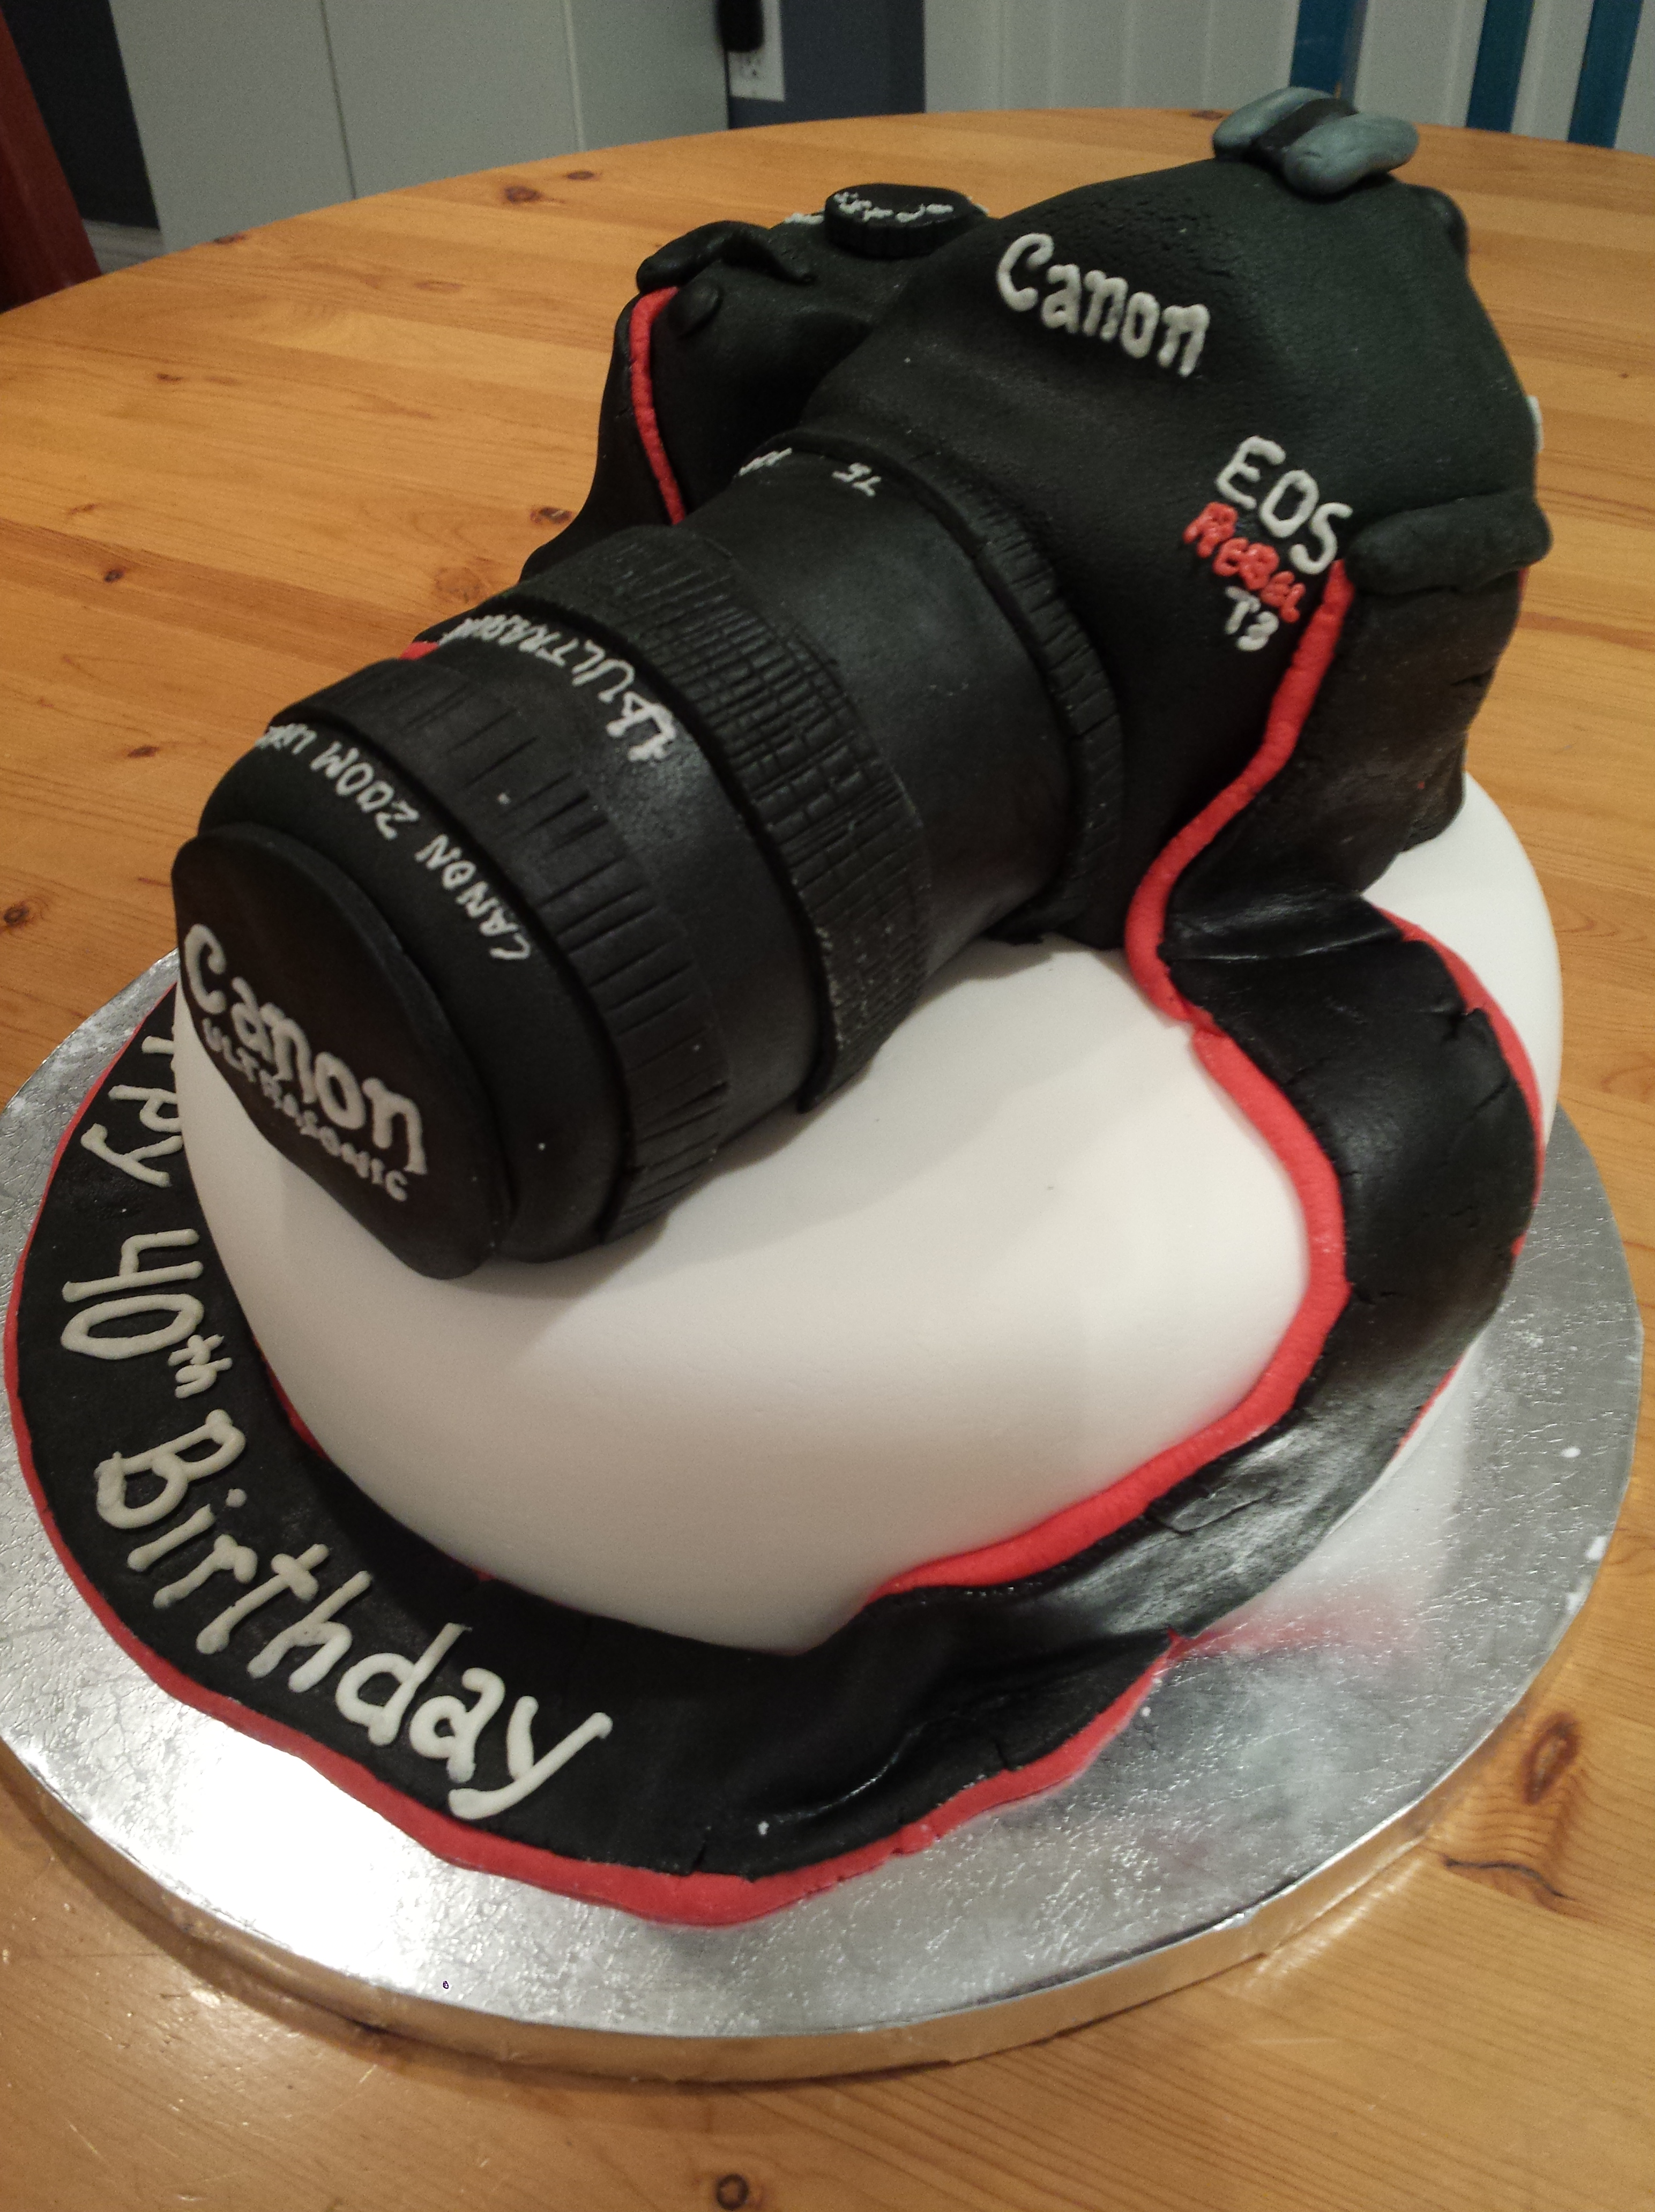 Birthday Cake Images For Camera : canon camera cake   Erica s Edibles